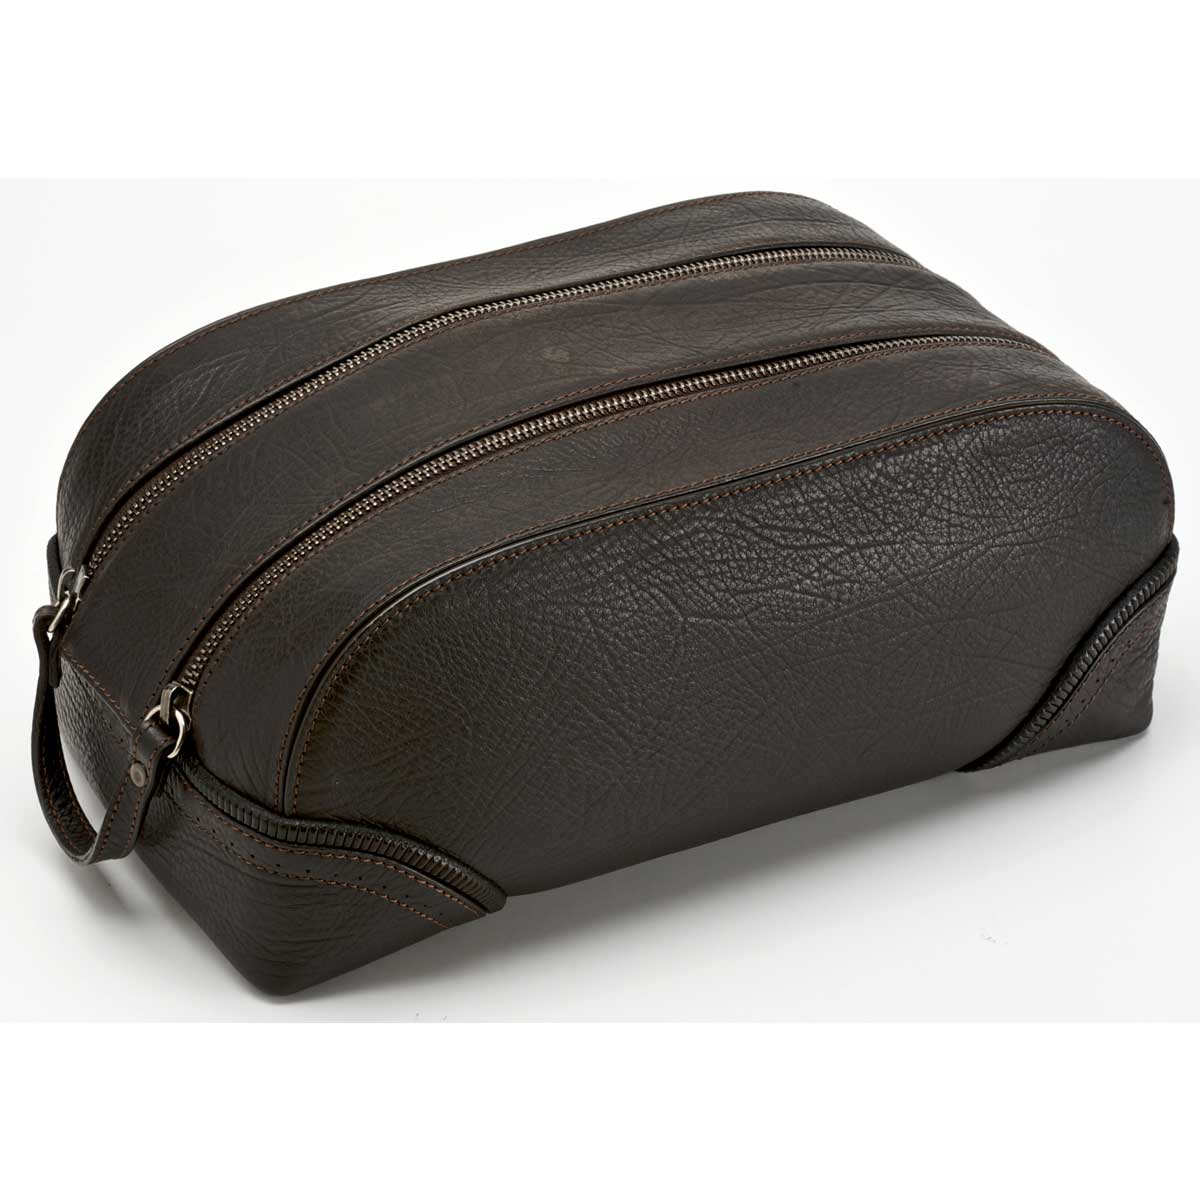 Pineider 1774 Leather Travel Toiletry Bag - Large